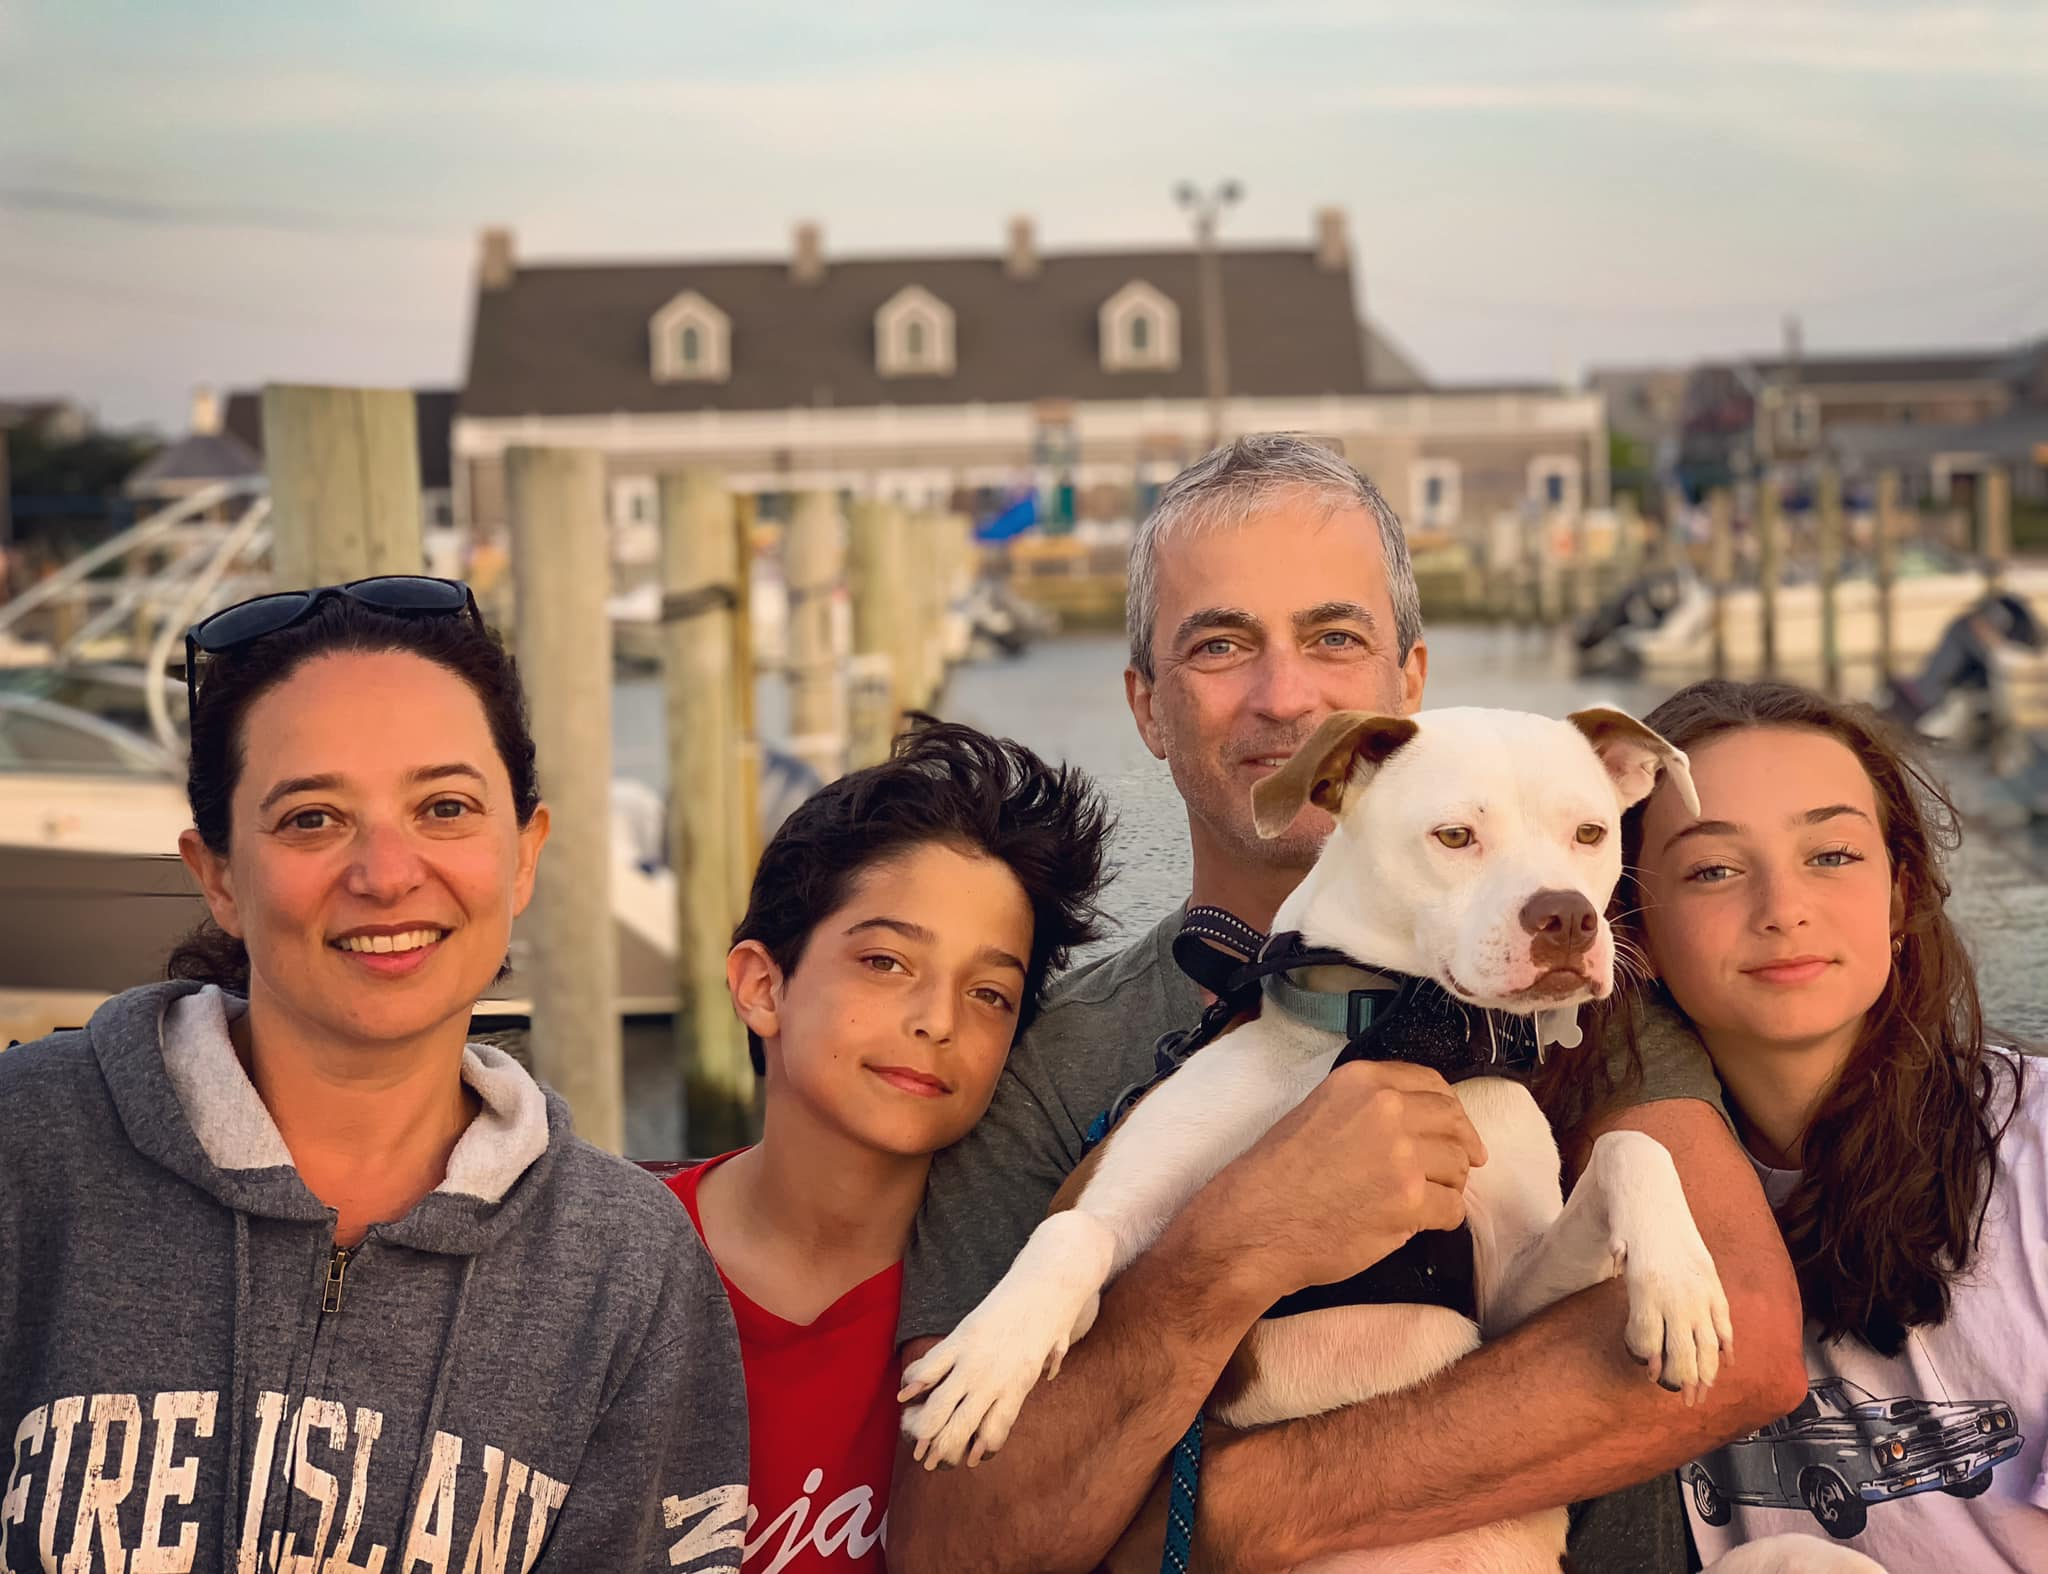 Family with their dog on a pier, color photo